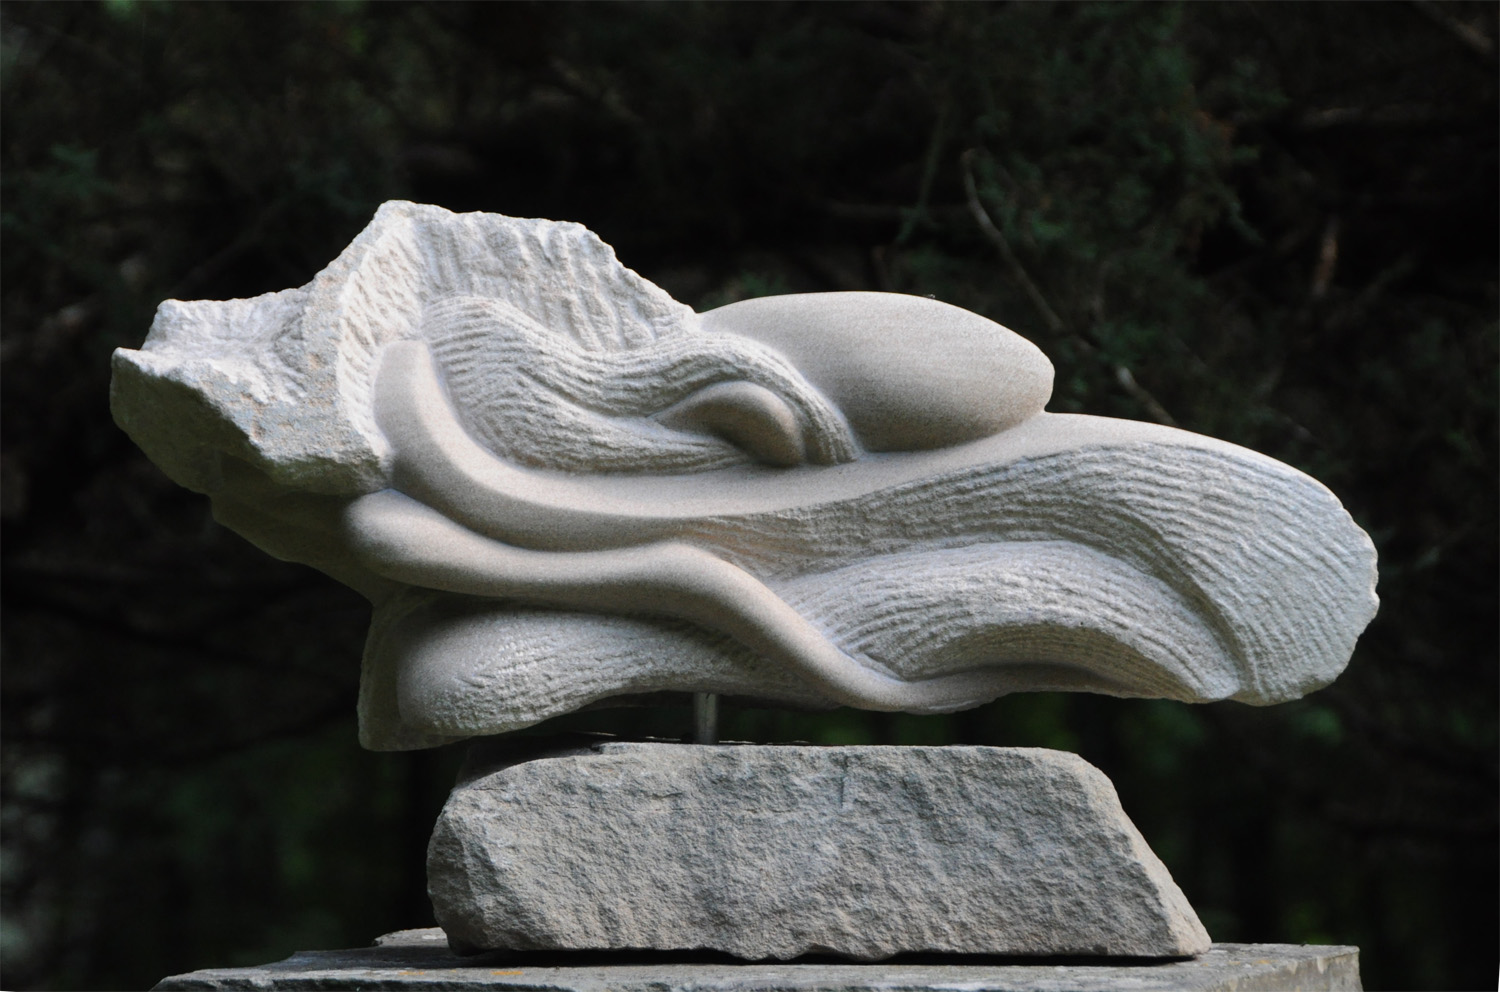 Stone Carvings    -  A selection of pieces in limestone, marble and alabaster exploring texture, contour, and contrast through predominately biomorphic forms.